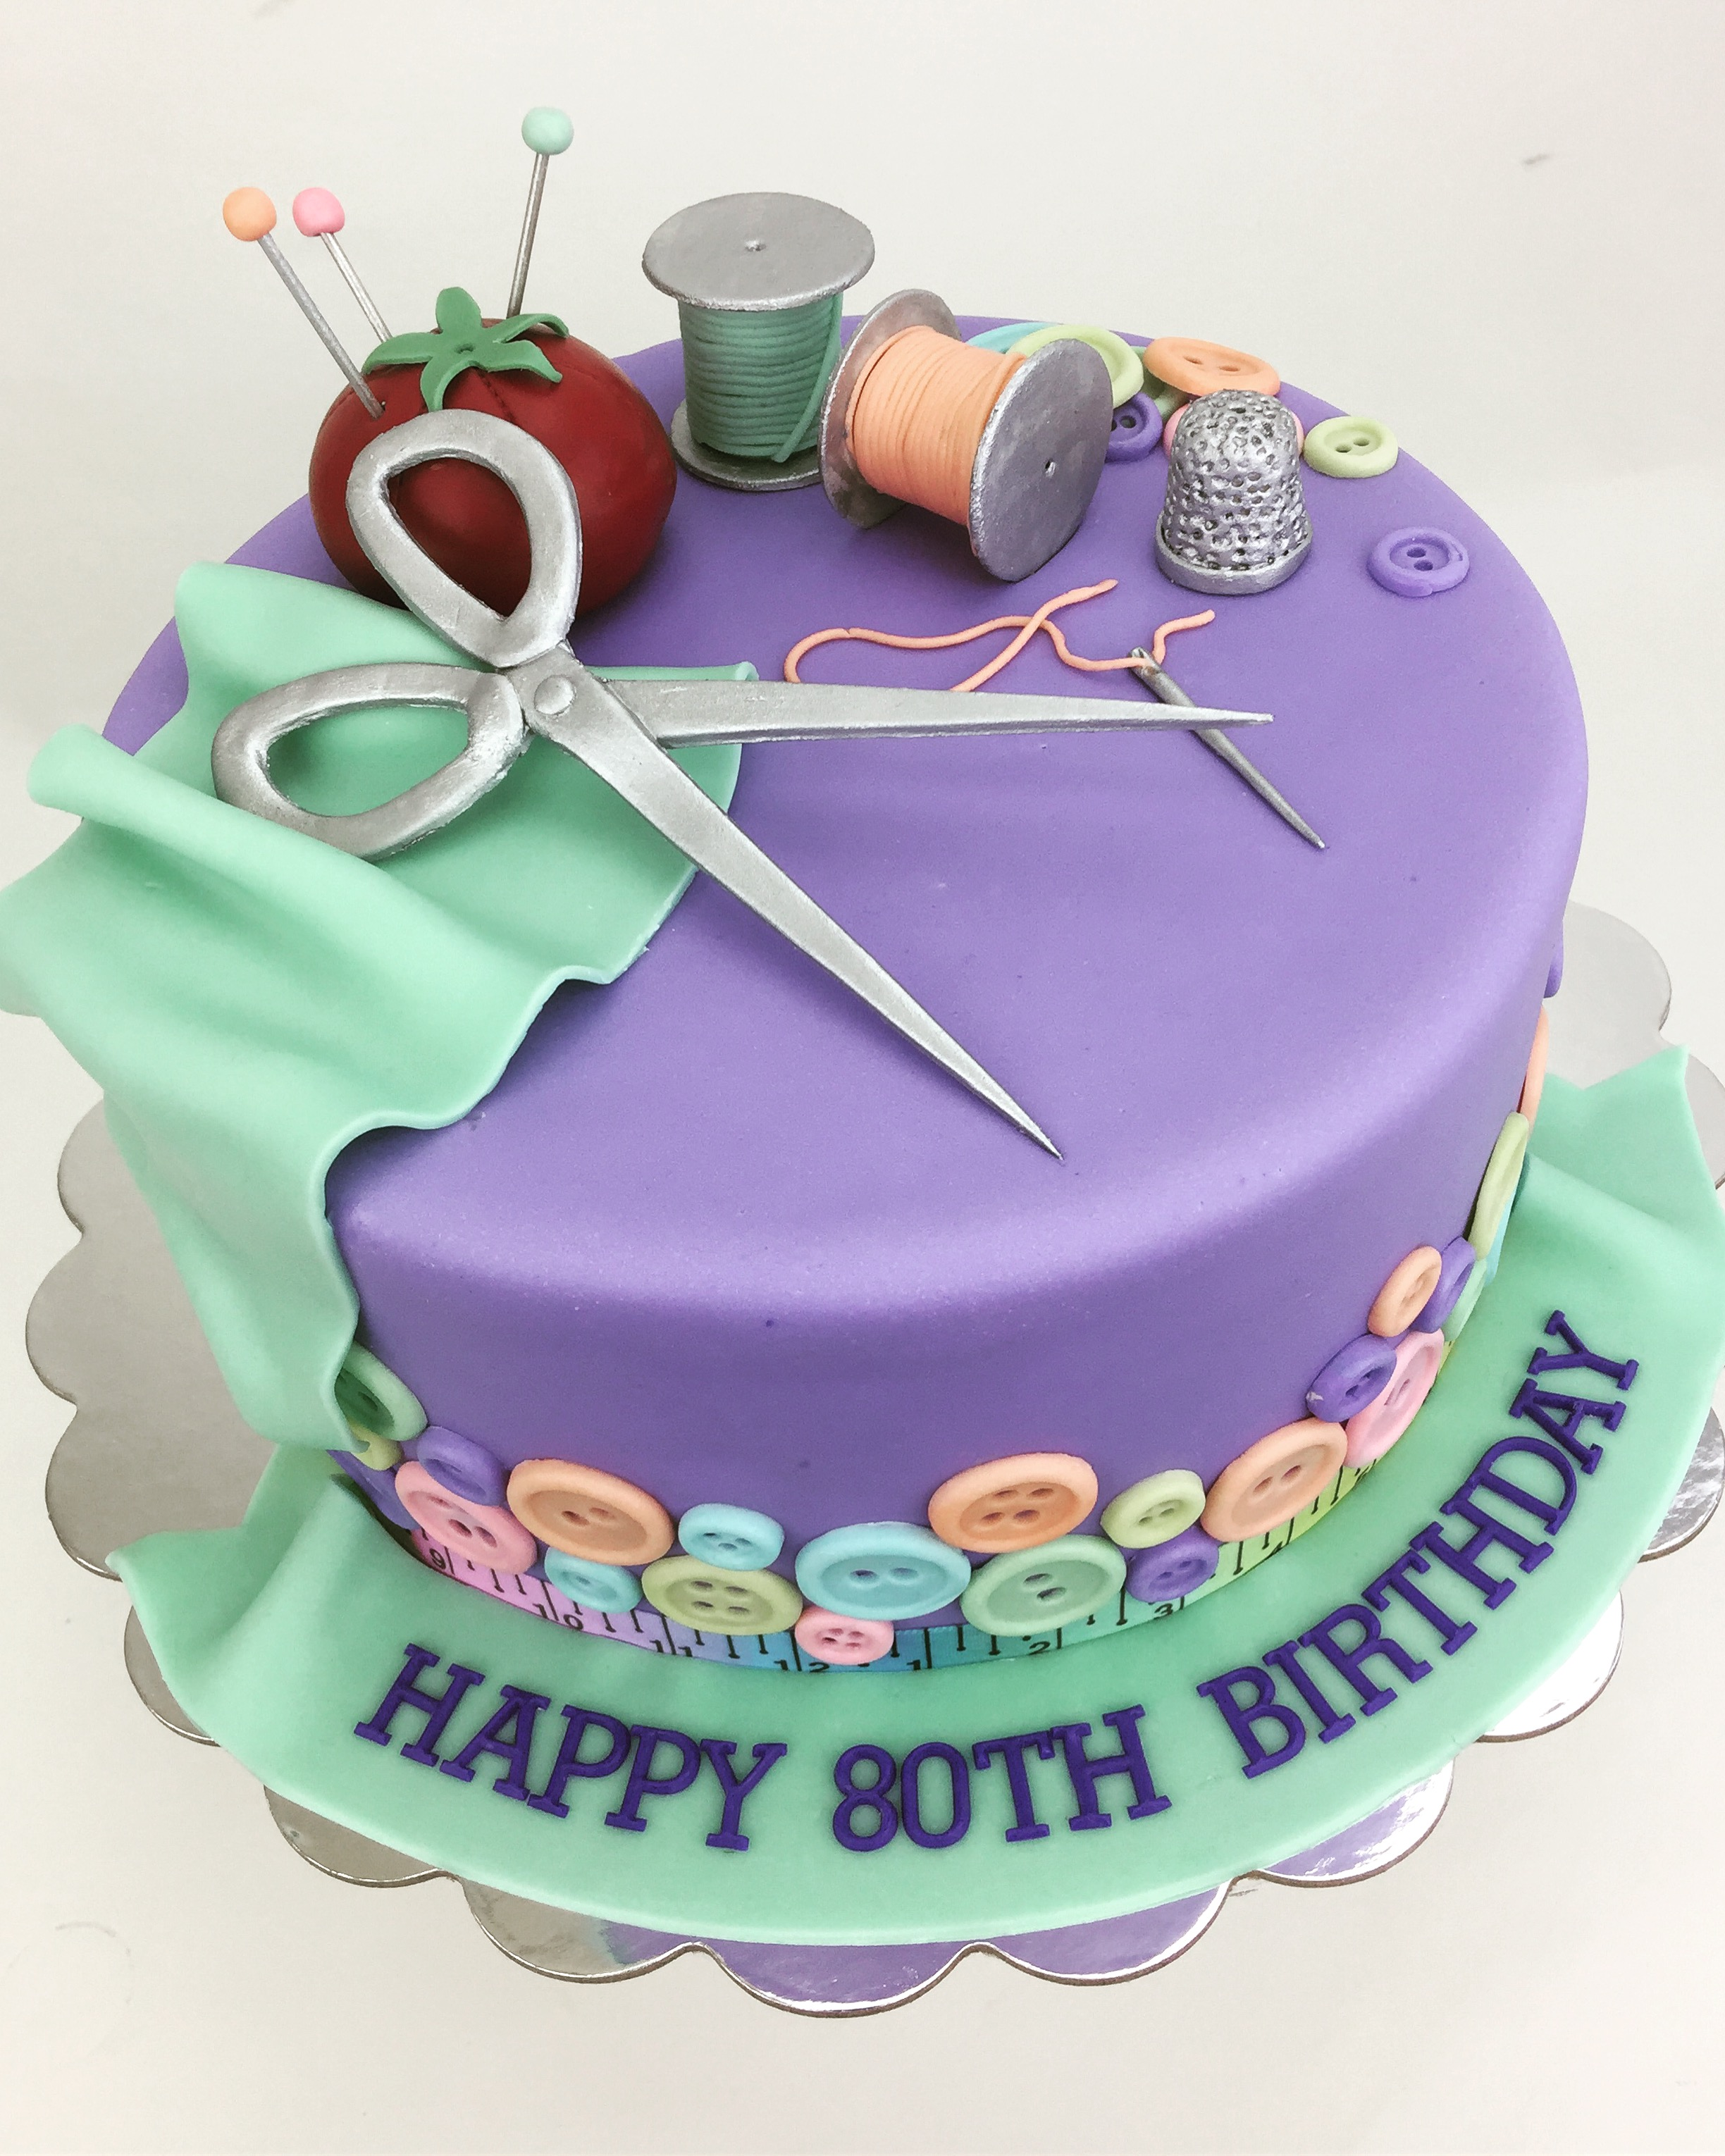 Sewing Birthday Cake